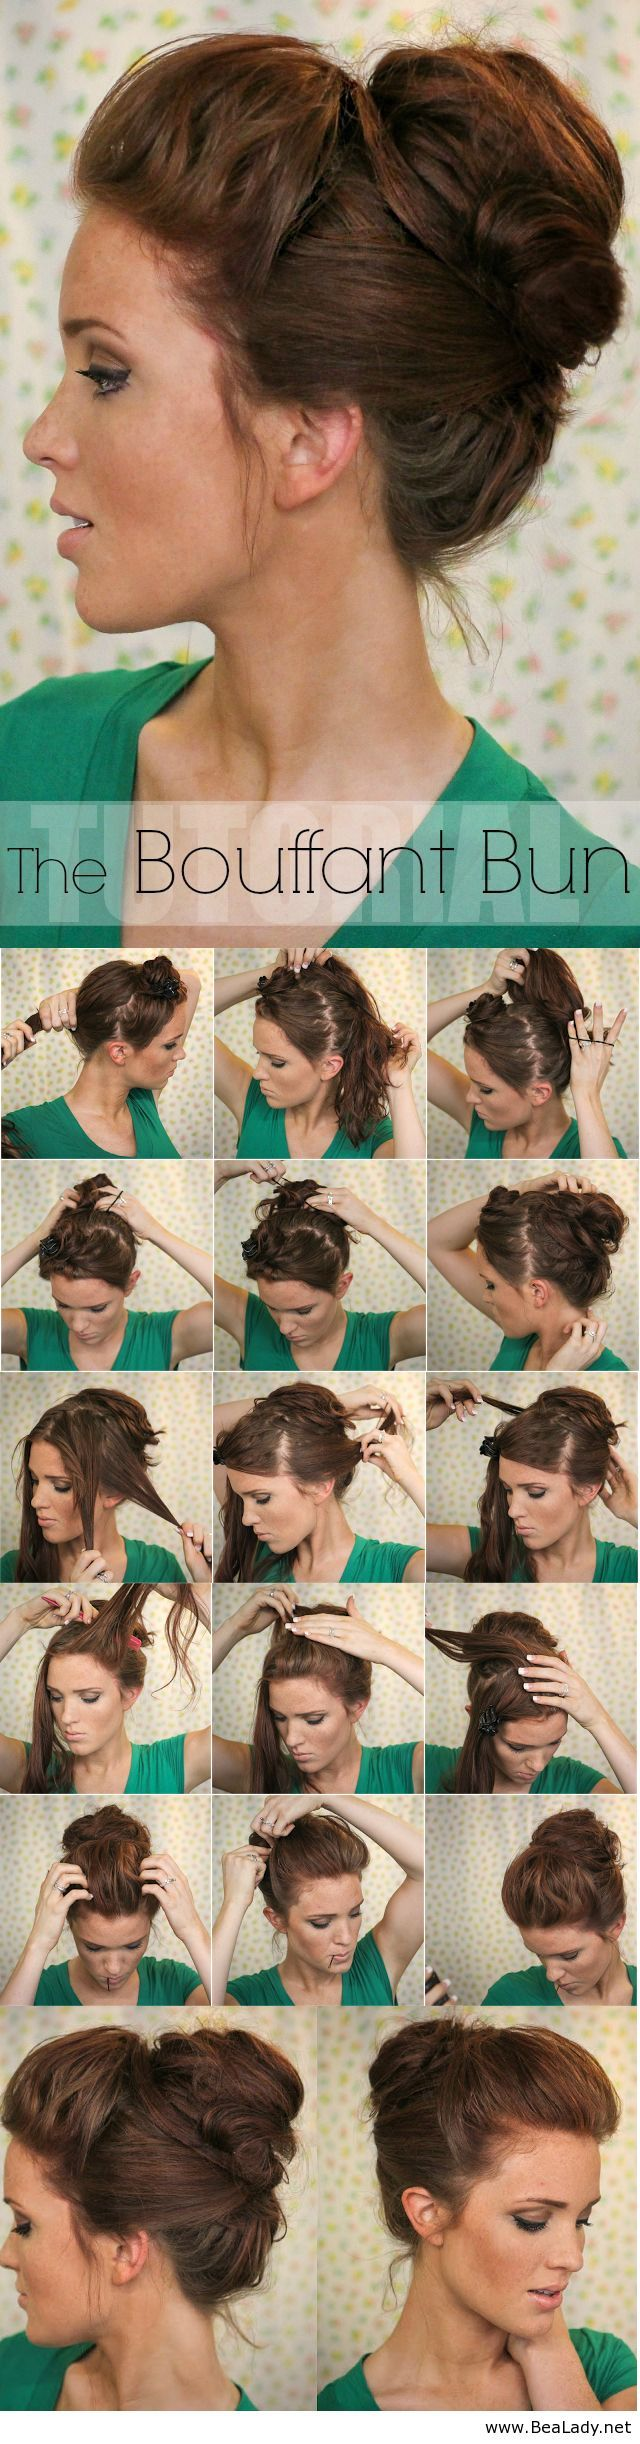 How-to DIY: Super Easy Knotted Bun Updo